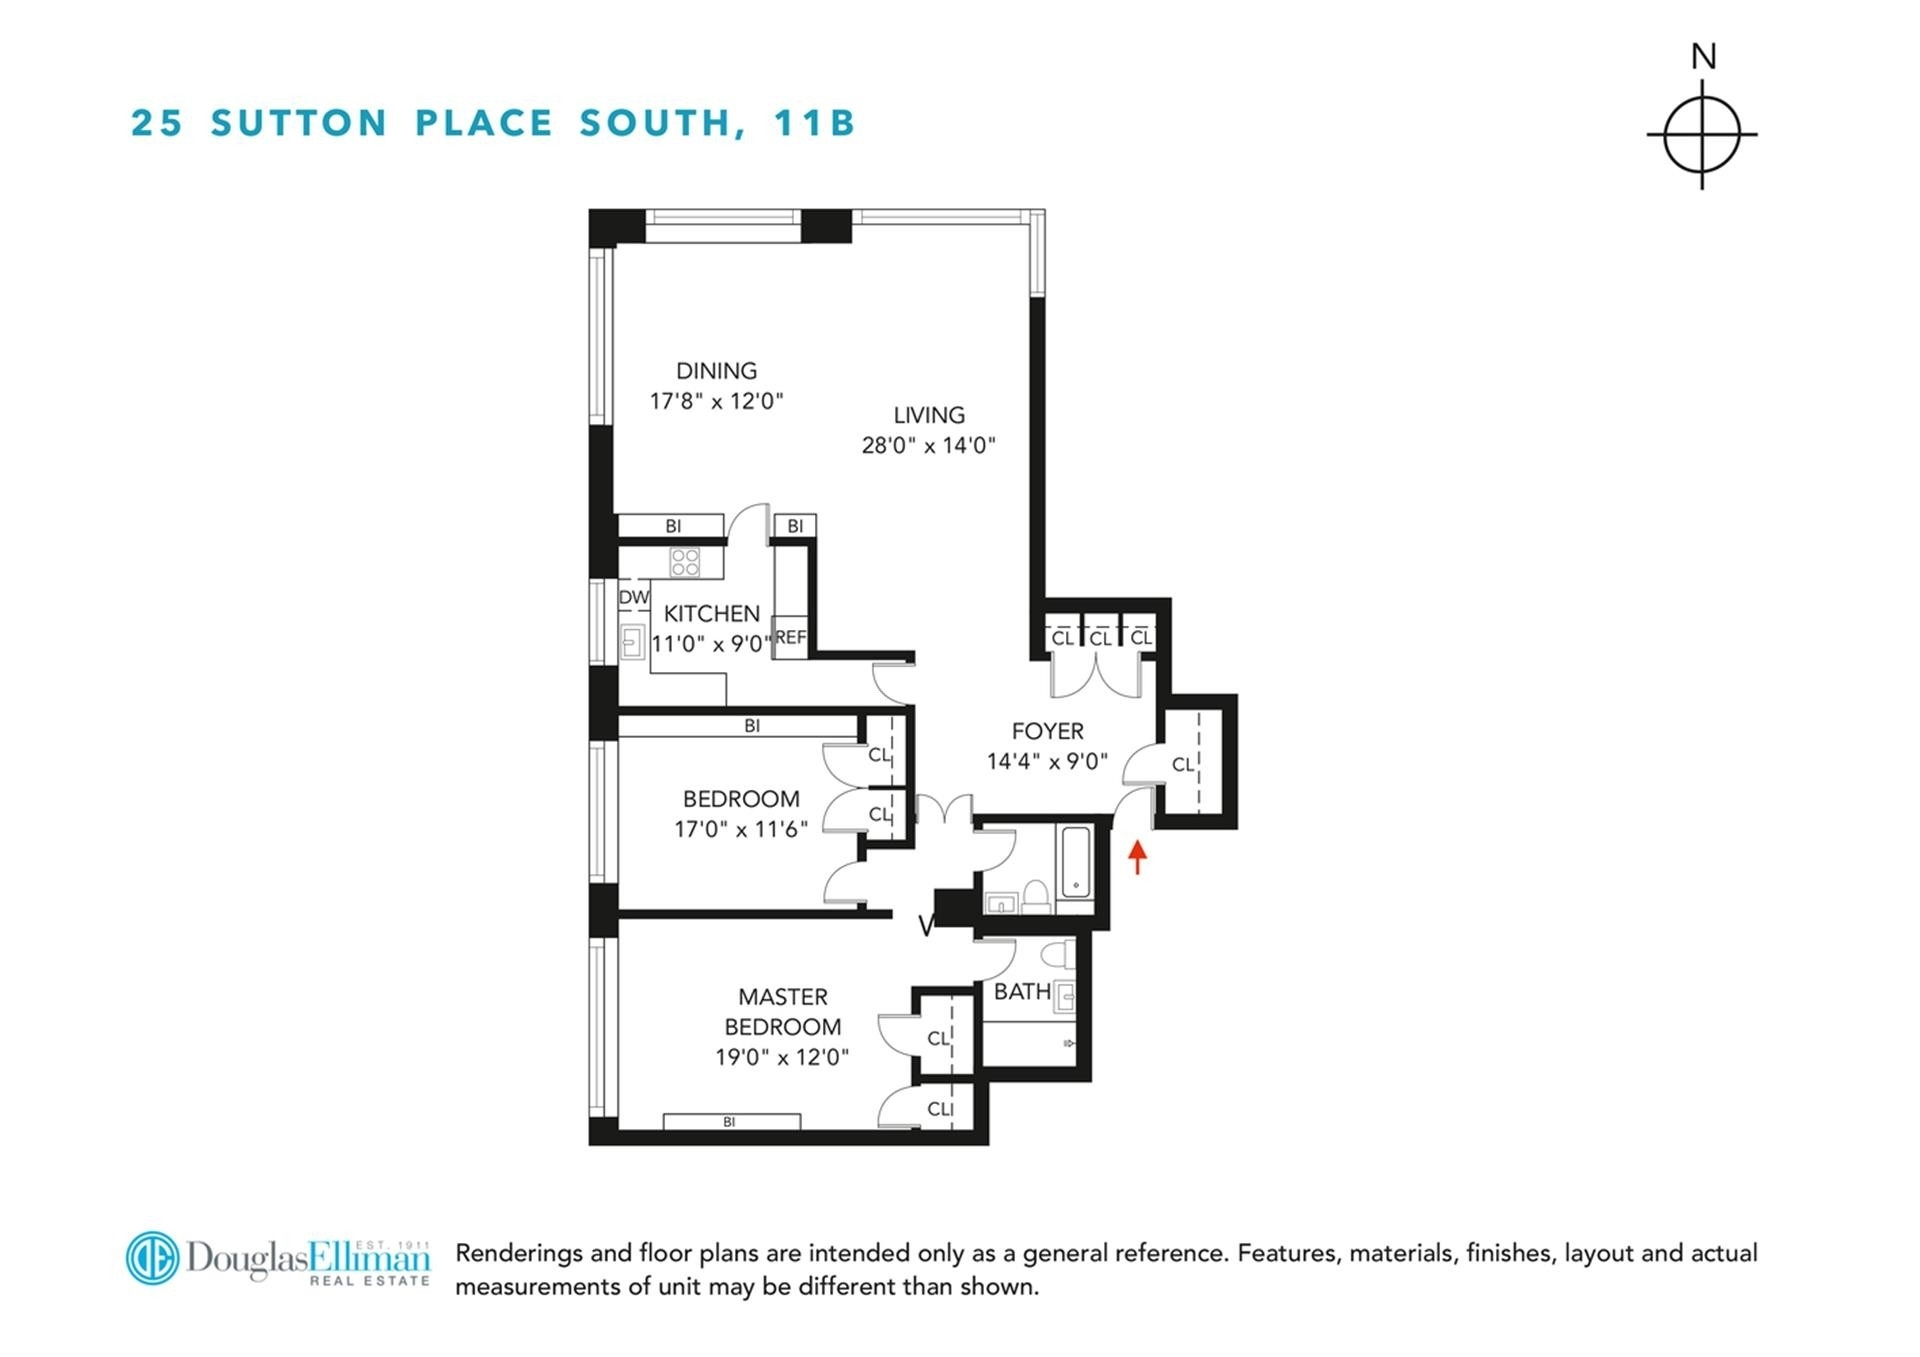 1. Co-op Properties for Sale at Cannon Point North, 25 SUTTON PL S, 11B Sutton Place, New York, NY 10022